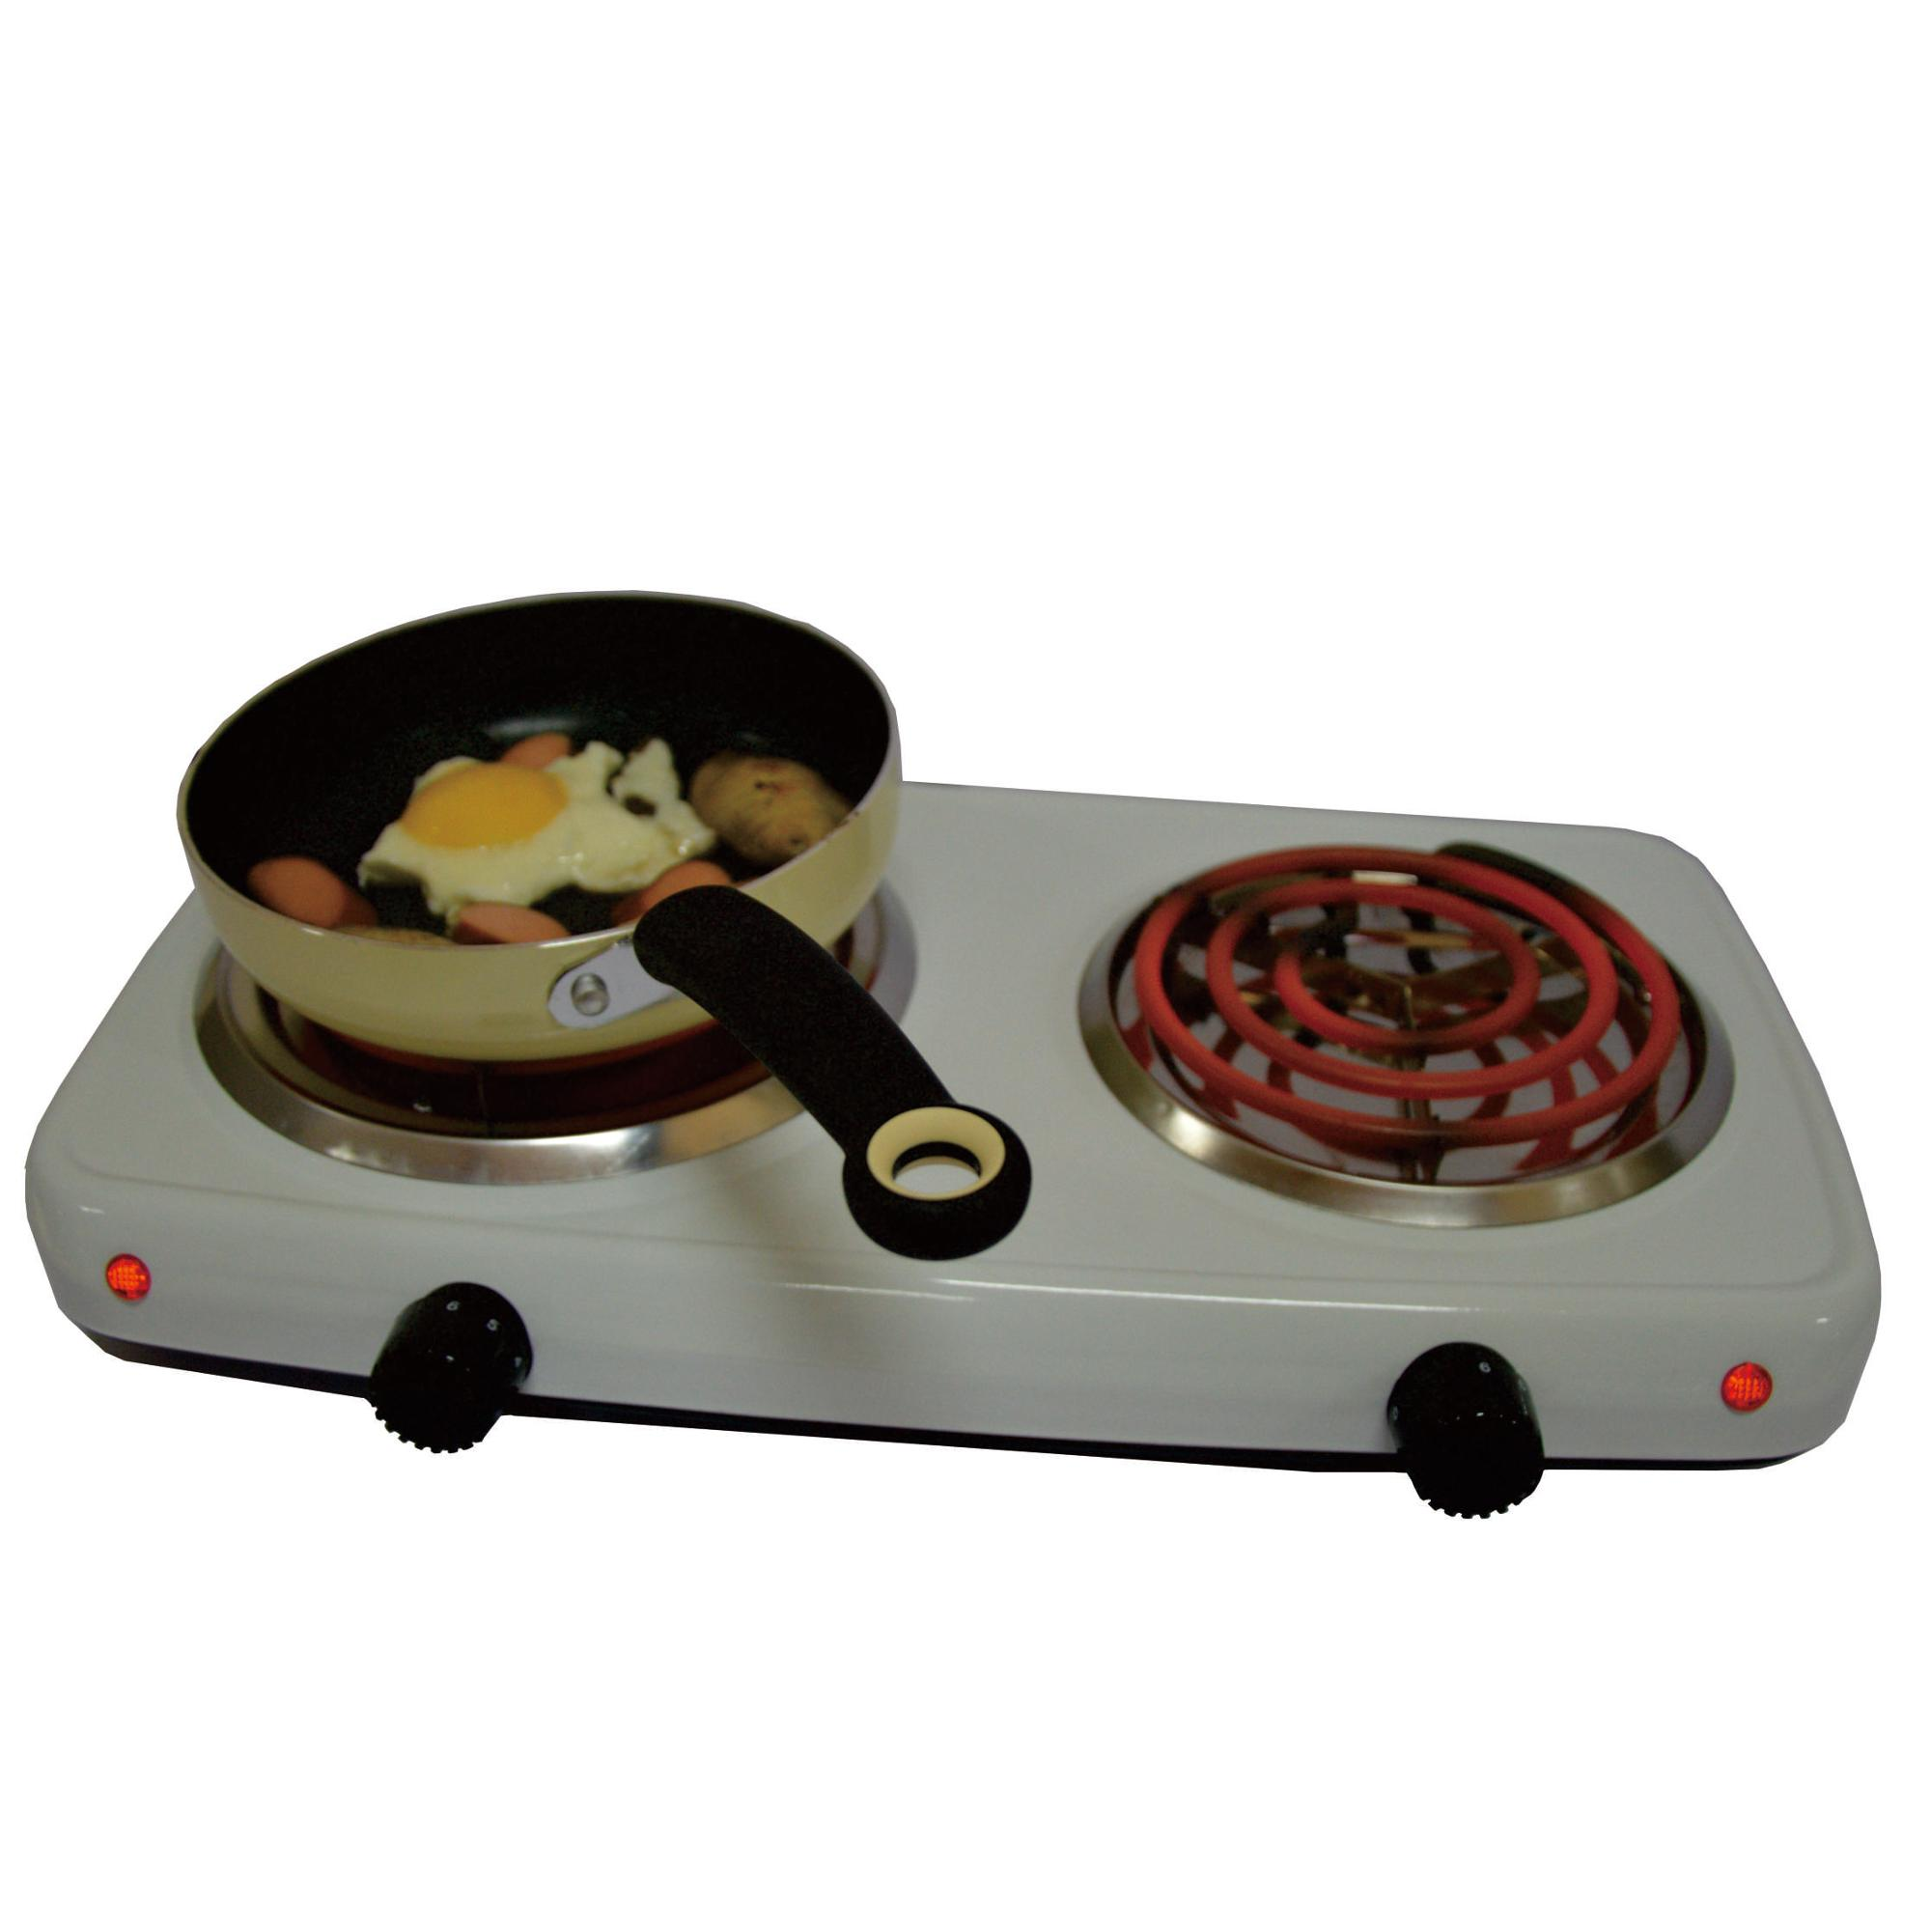 Hotplate Electric Double Burner Coil Spiral Tubes Good Electric Stove Hot Plate